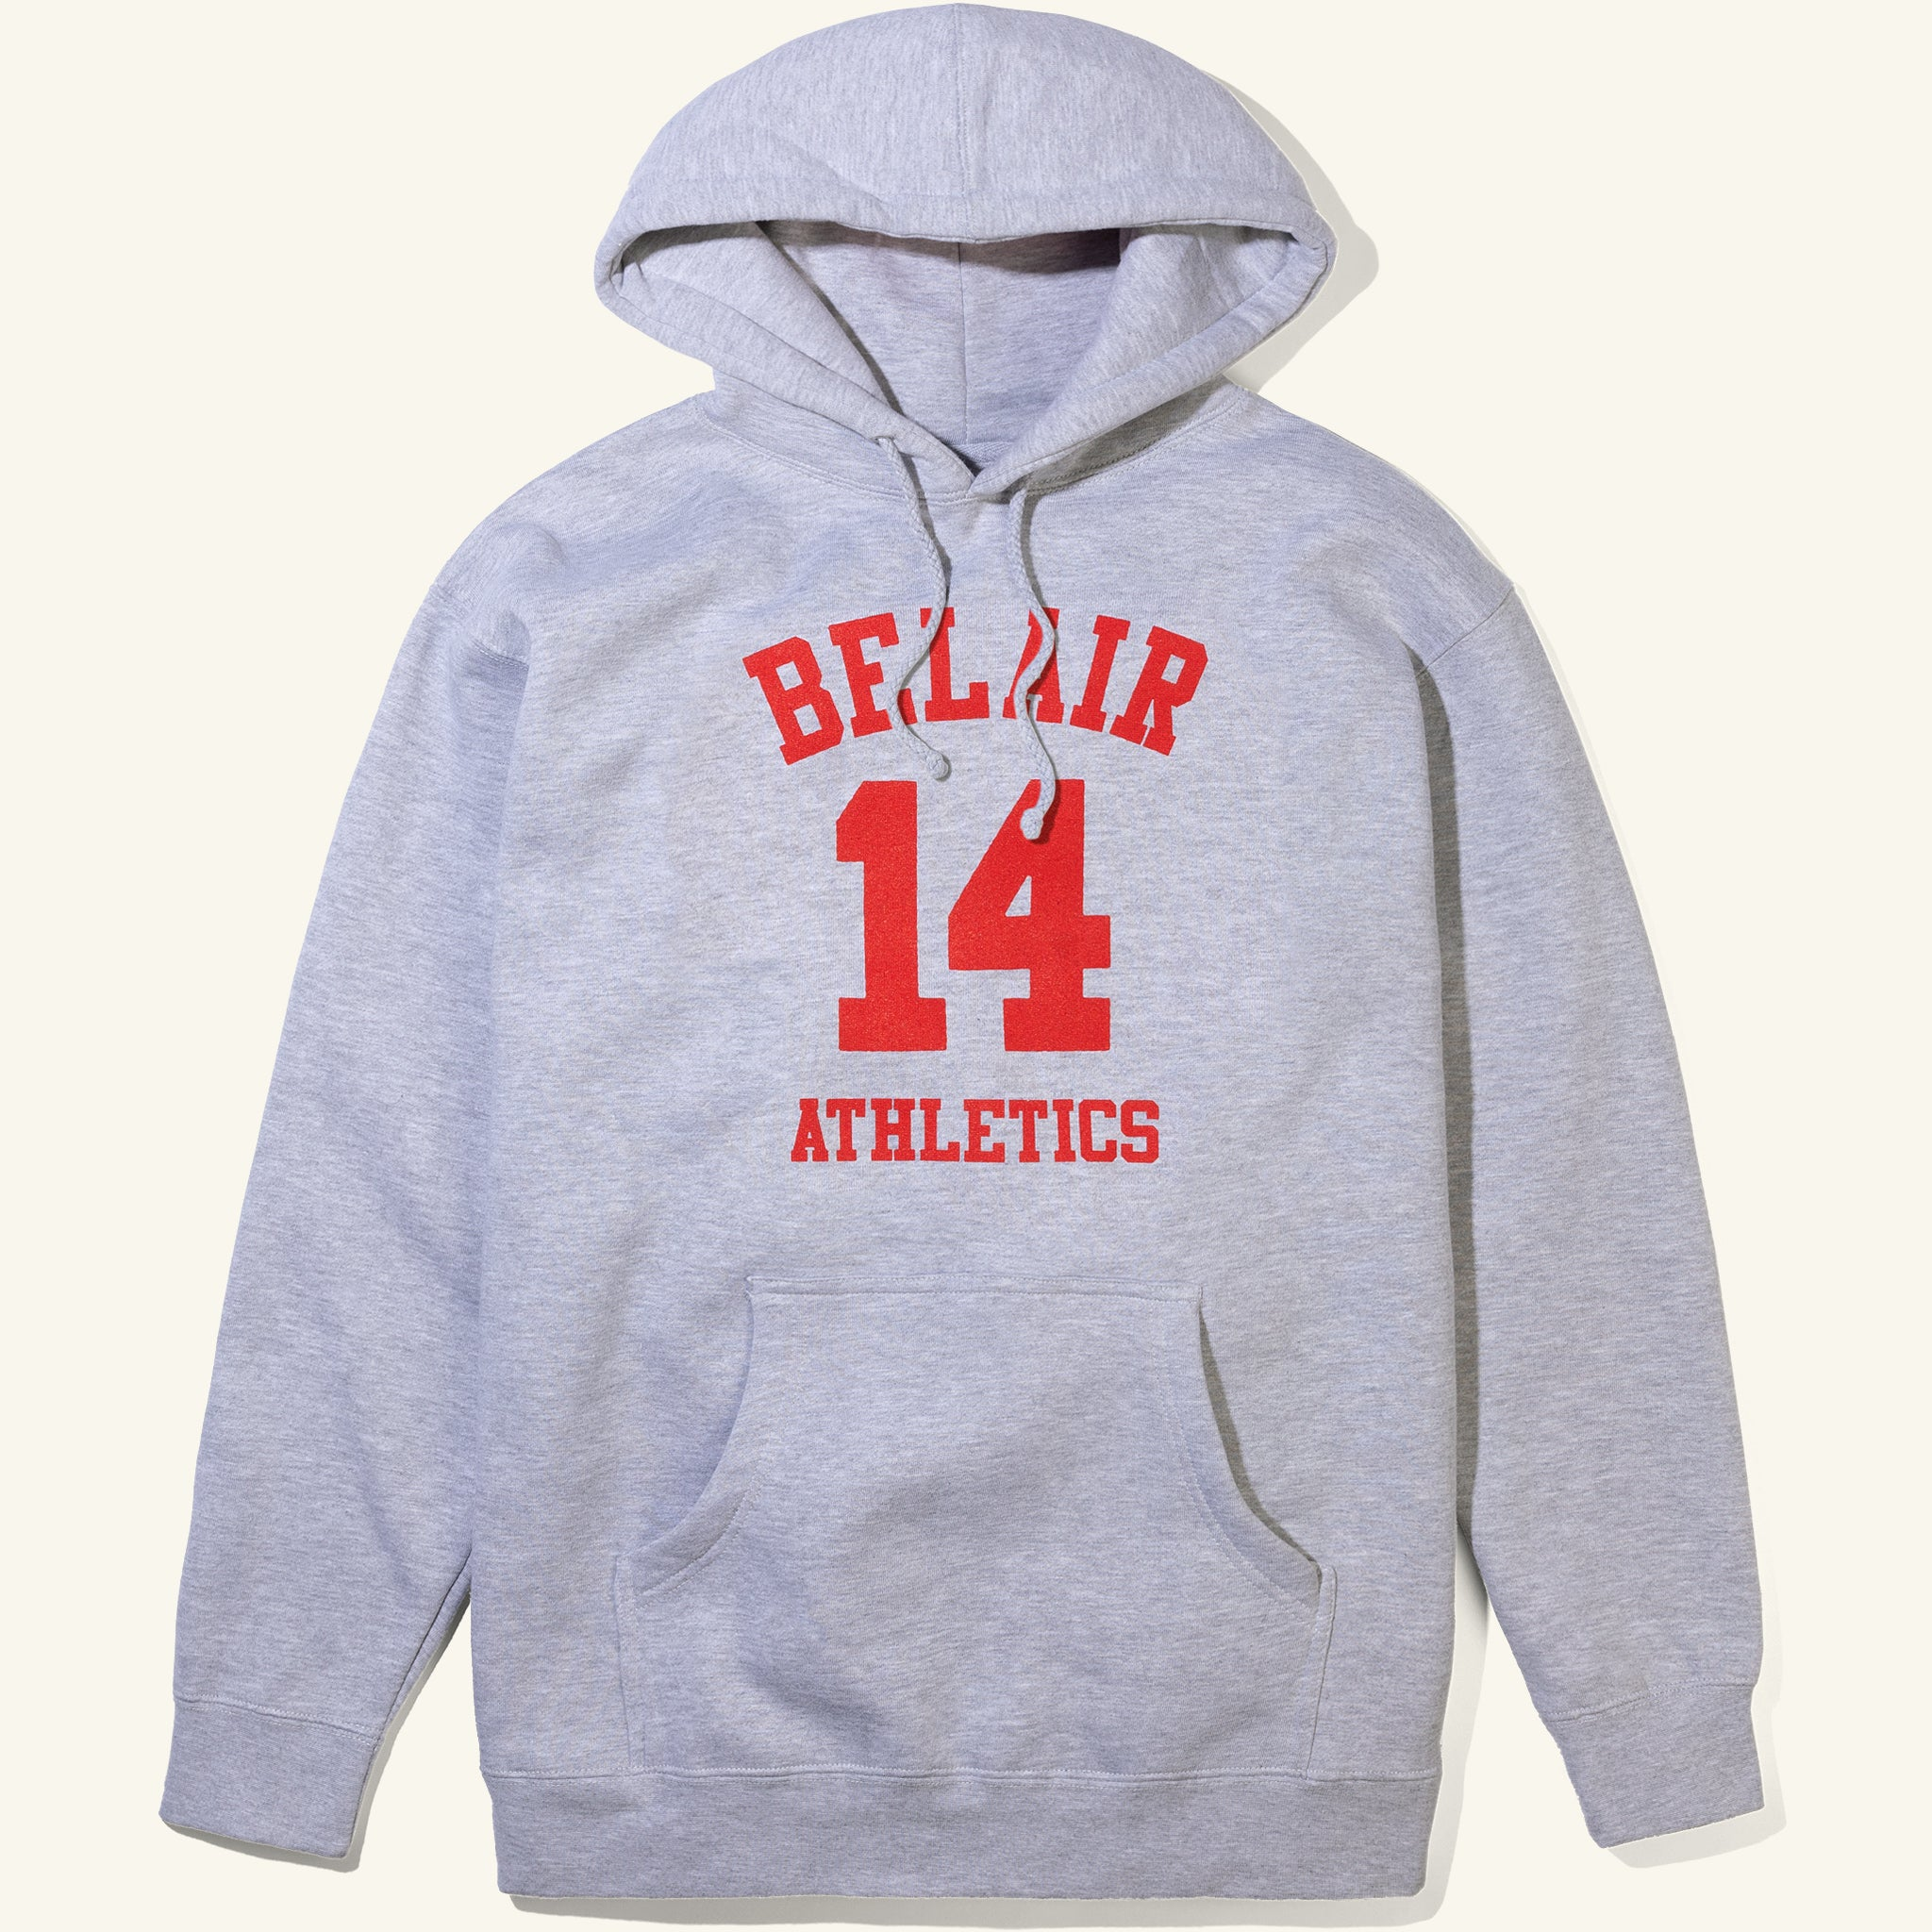 Bel Air 14 Hoodie Heather Grey Image  #1